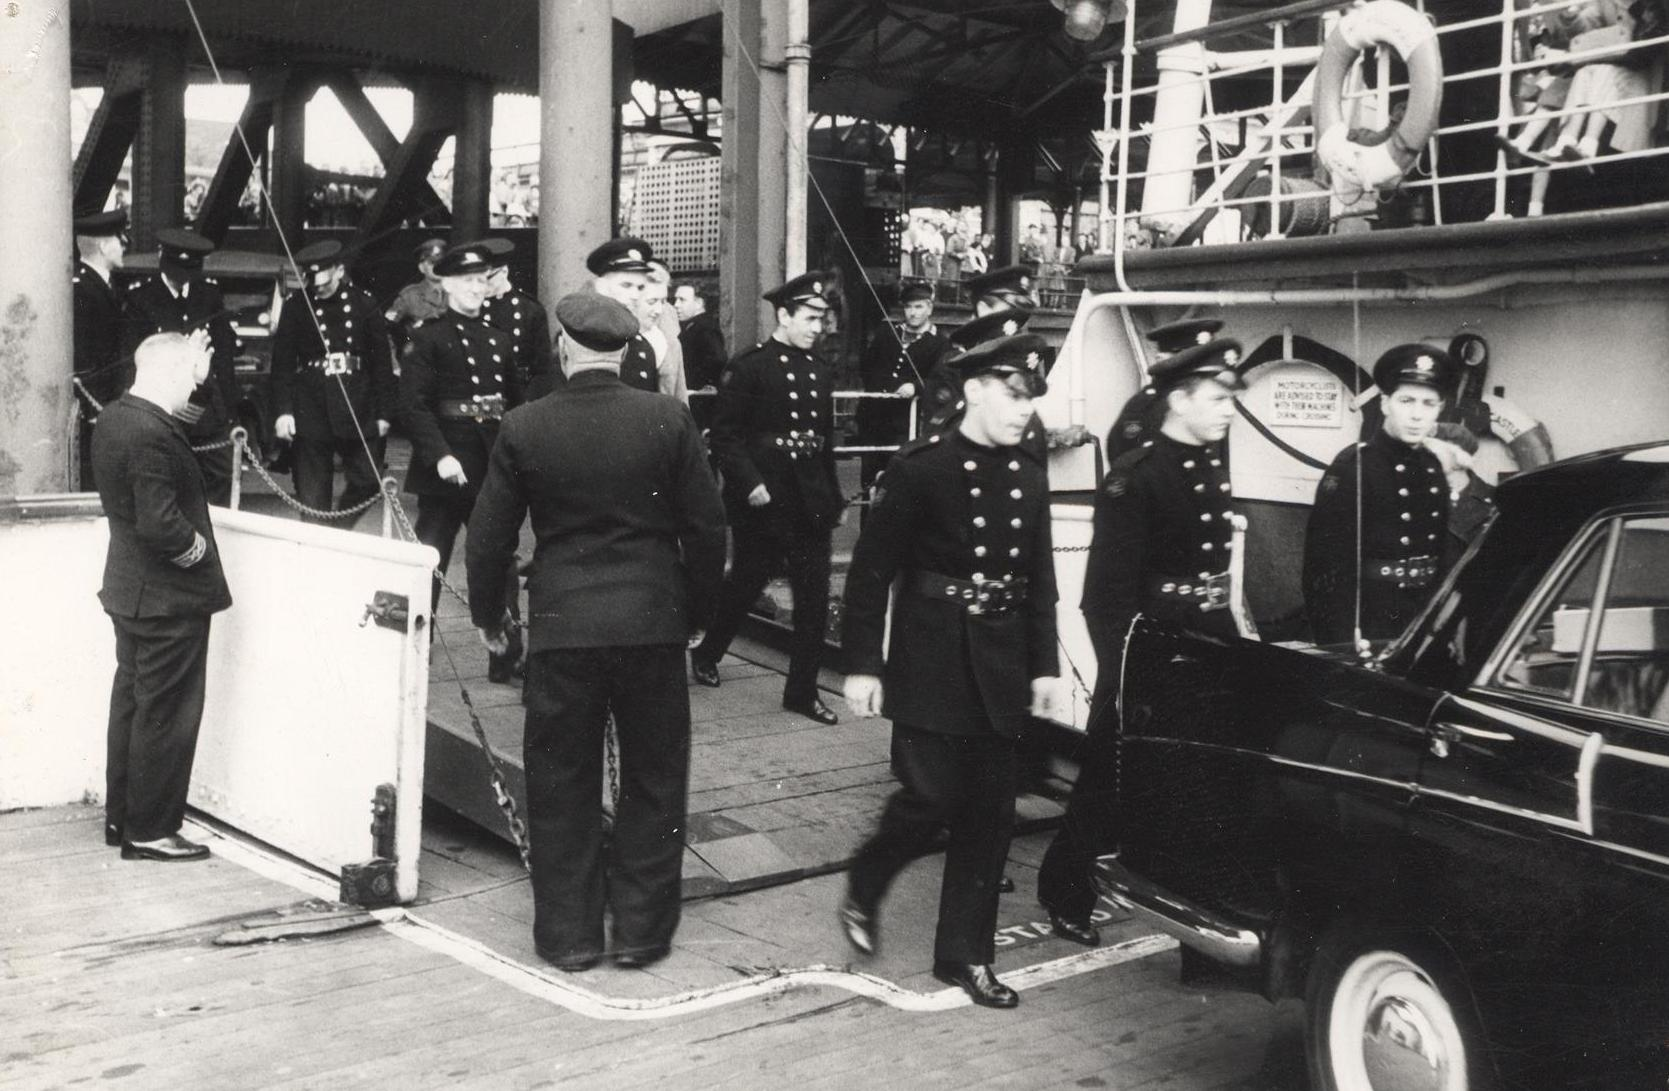 Emergency personnel disembark from  the Humber ferry 28 May 1961 (archive ref CD-103) (16)